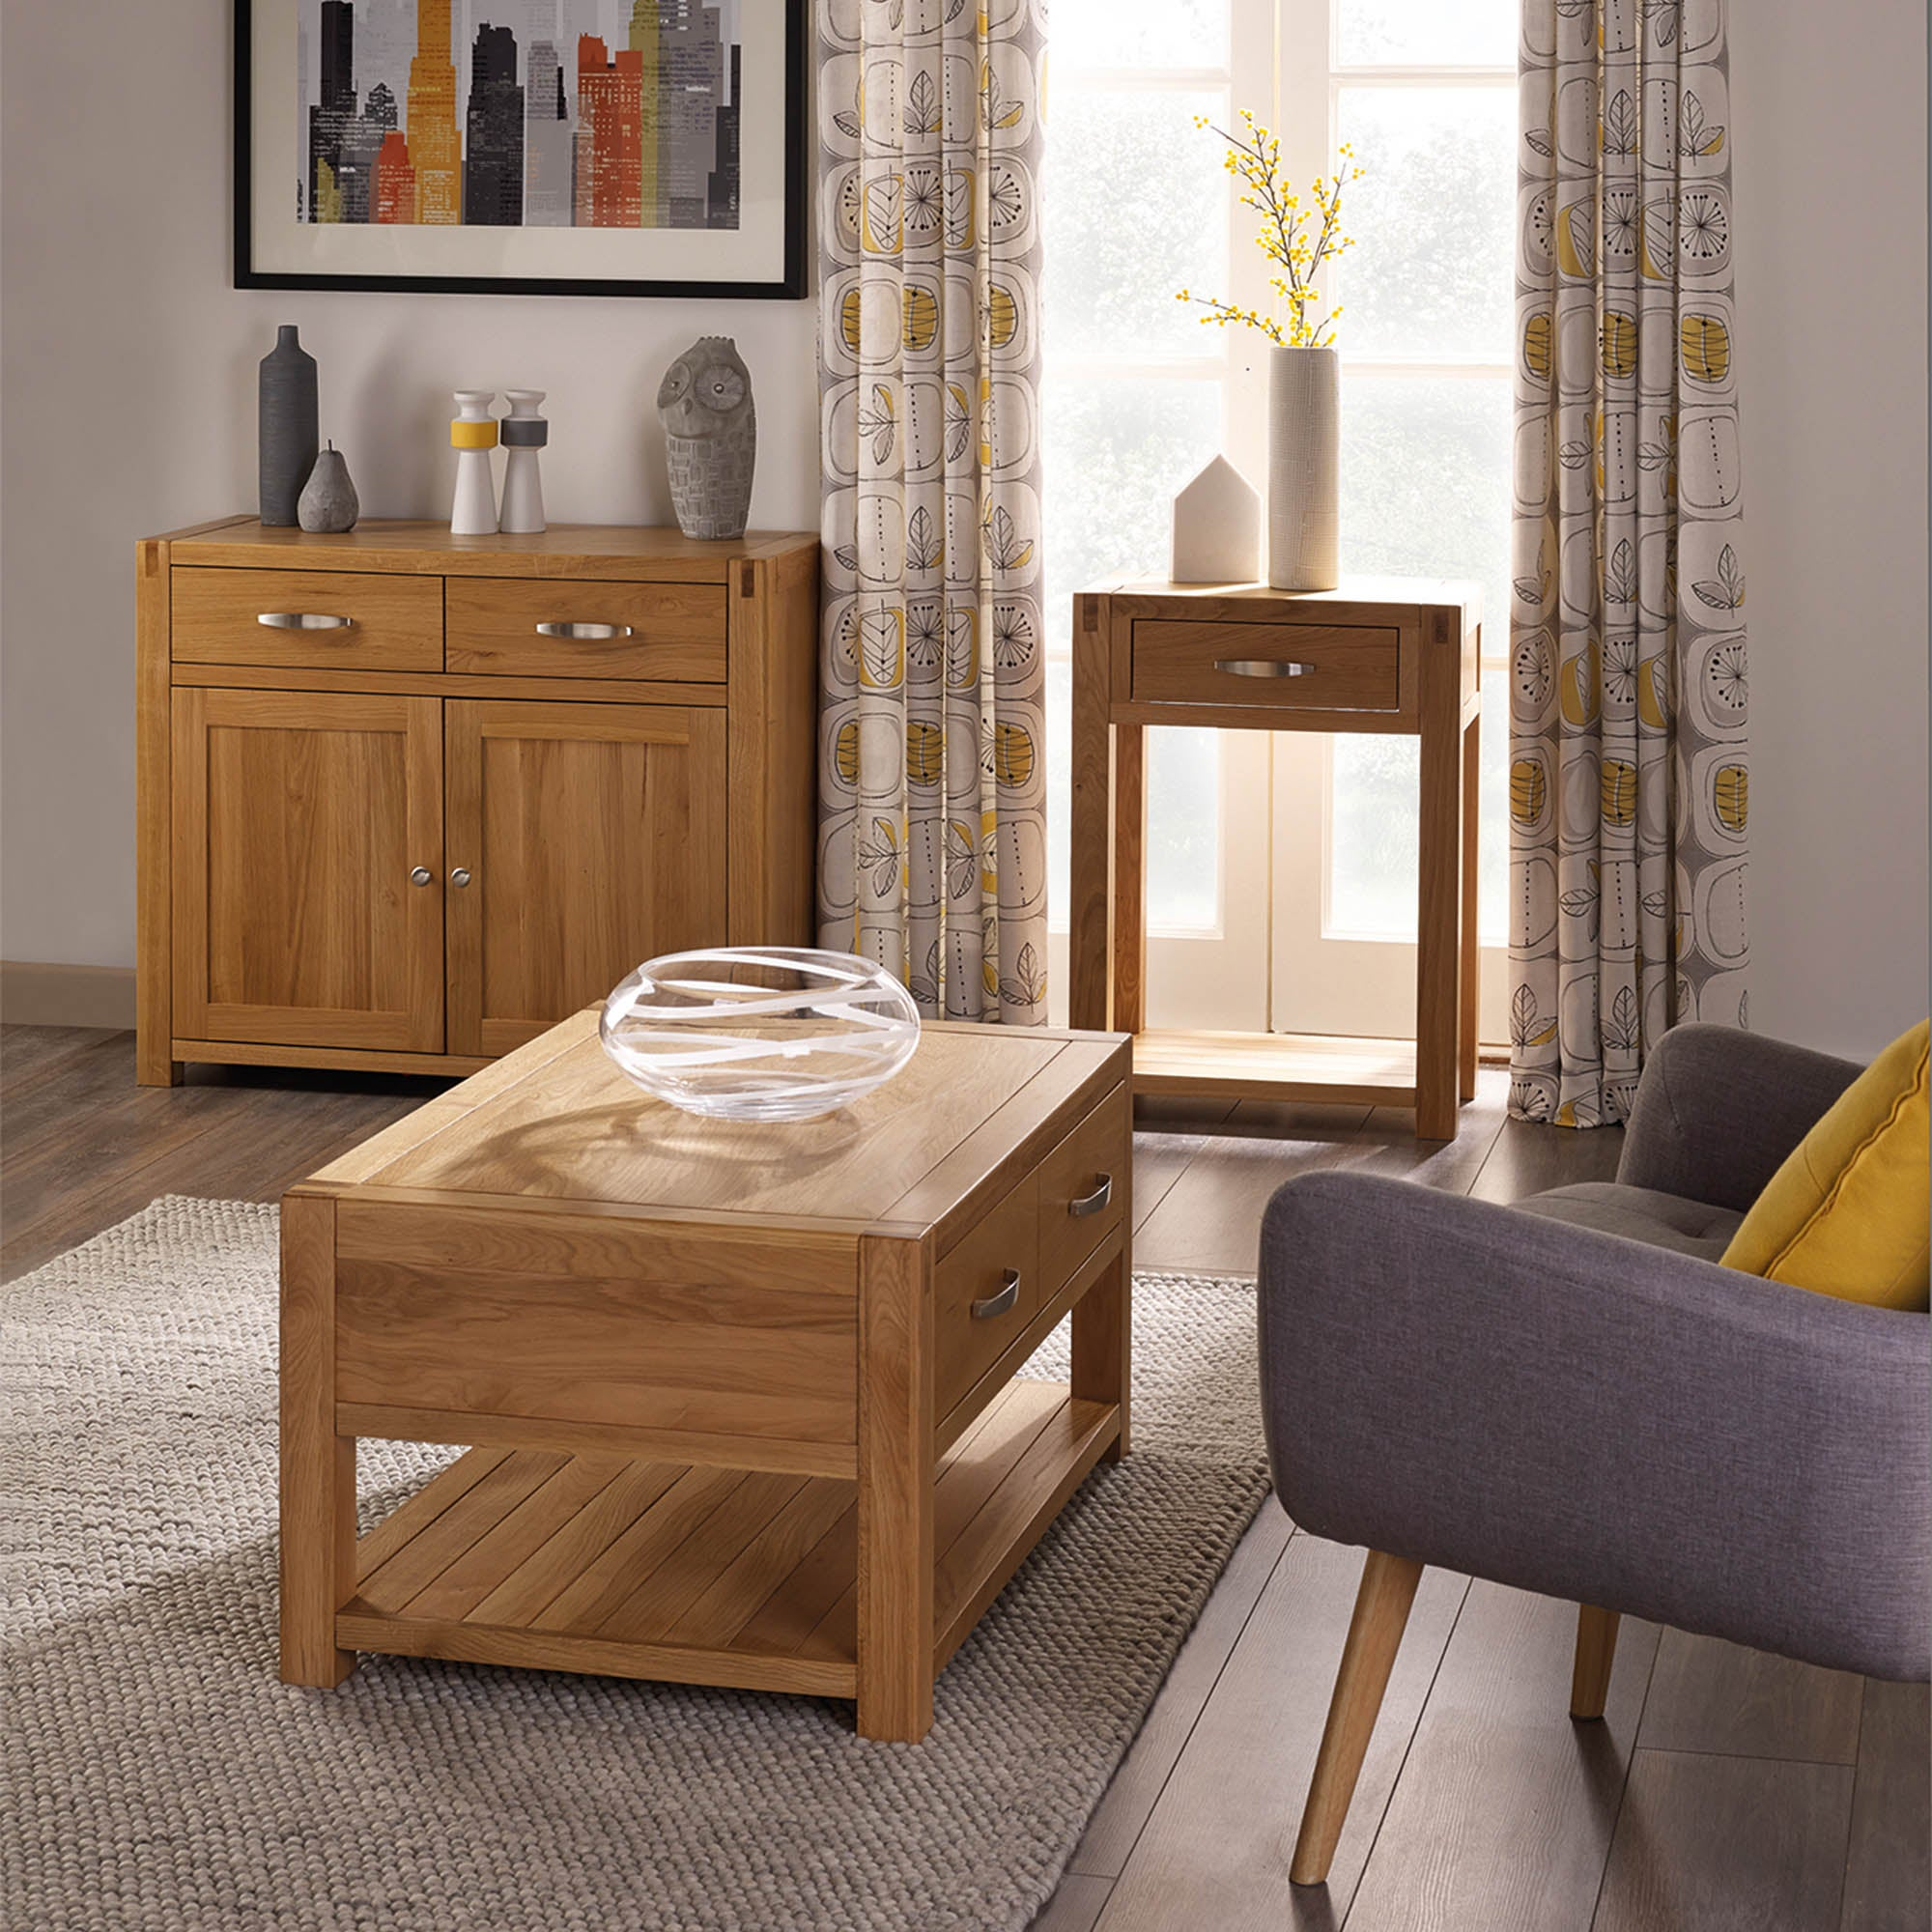 Hastings Solid Oak Living Room Collection  Dunelm. Beach Style Living Room. Living Room Bed Designs. Living Room Tv Stands. Green And Purple Living Room. Living Room High Ceiling Ideas. The Living Room Templestowe. Home Design Living Room. Picture Of Modern Living Room